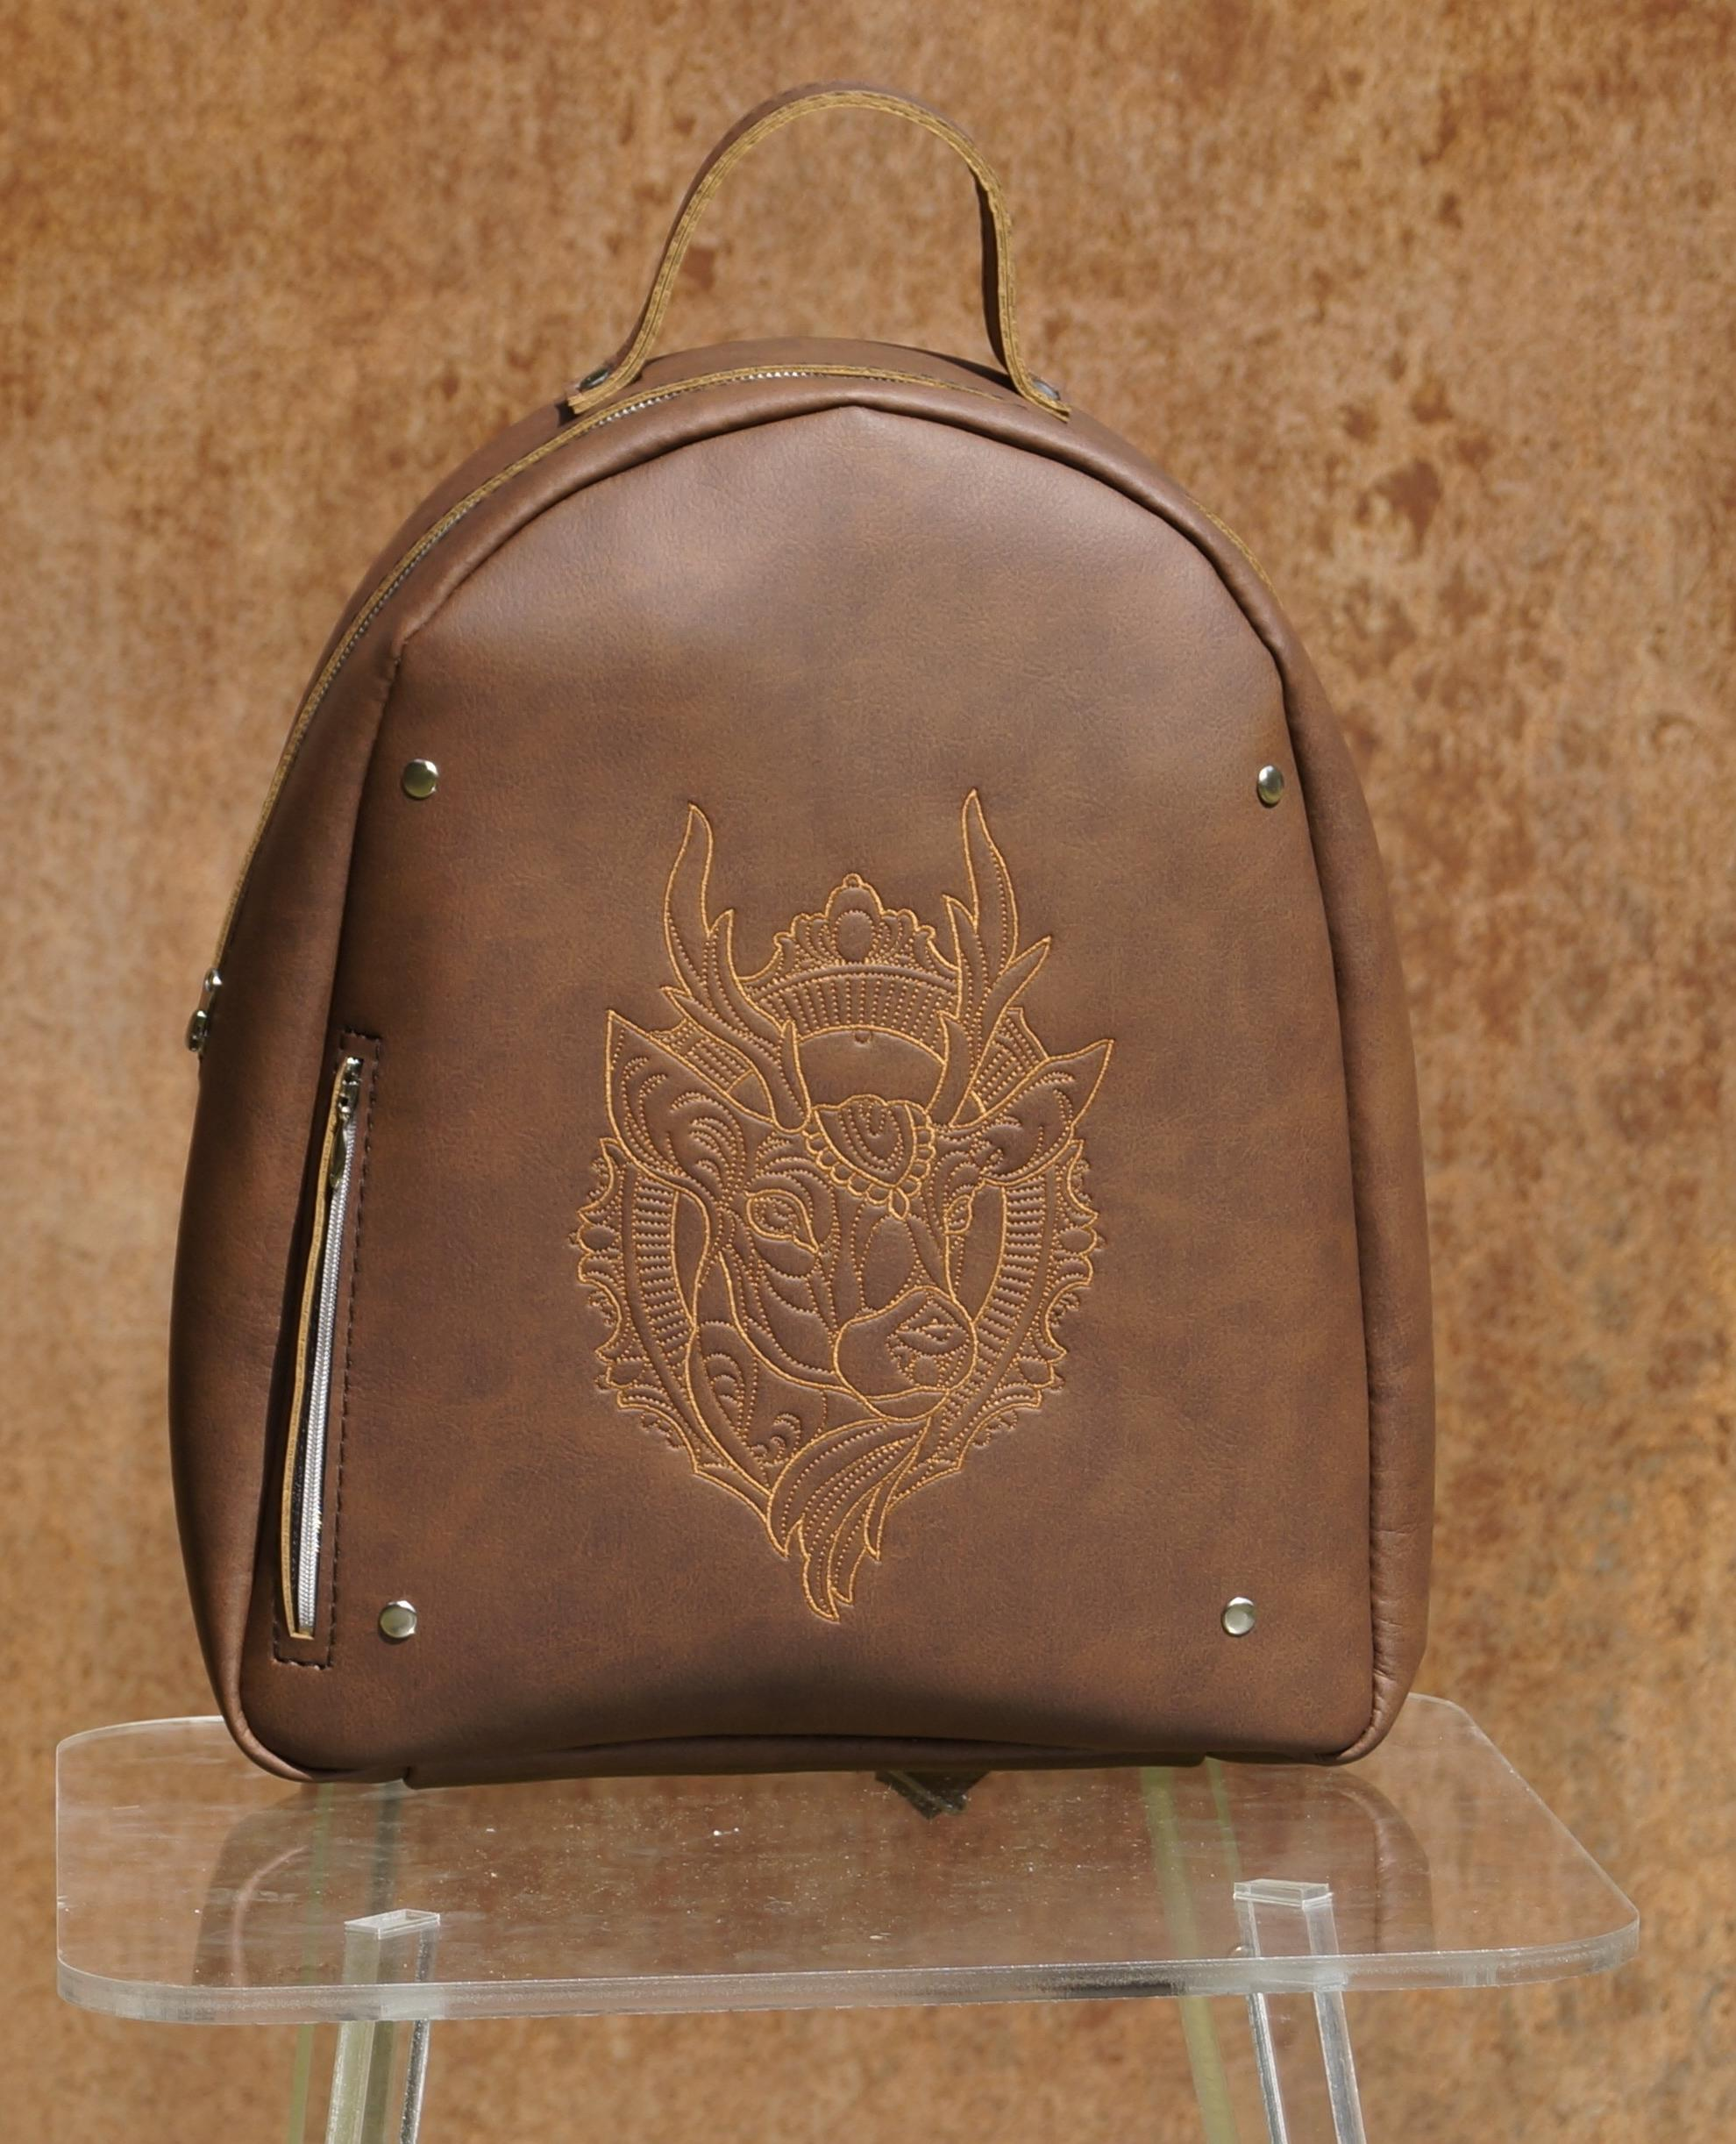 Embroidered backpack with Deer's head design